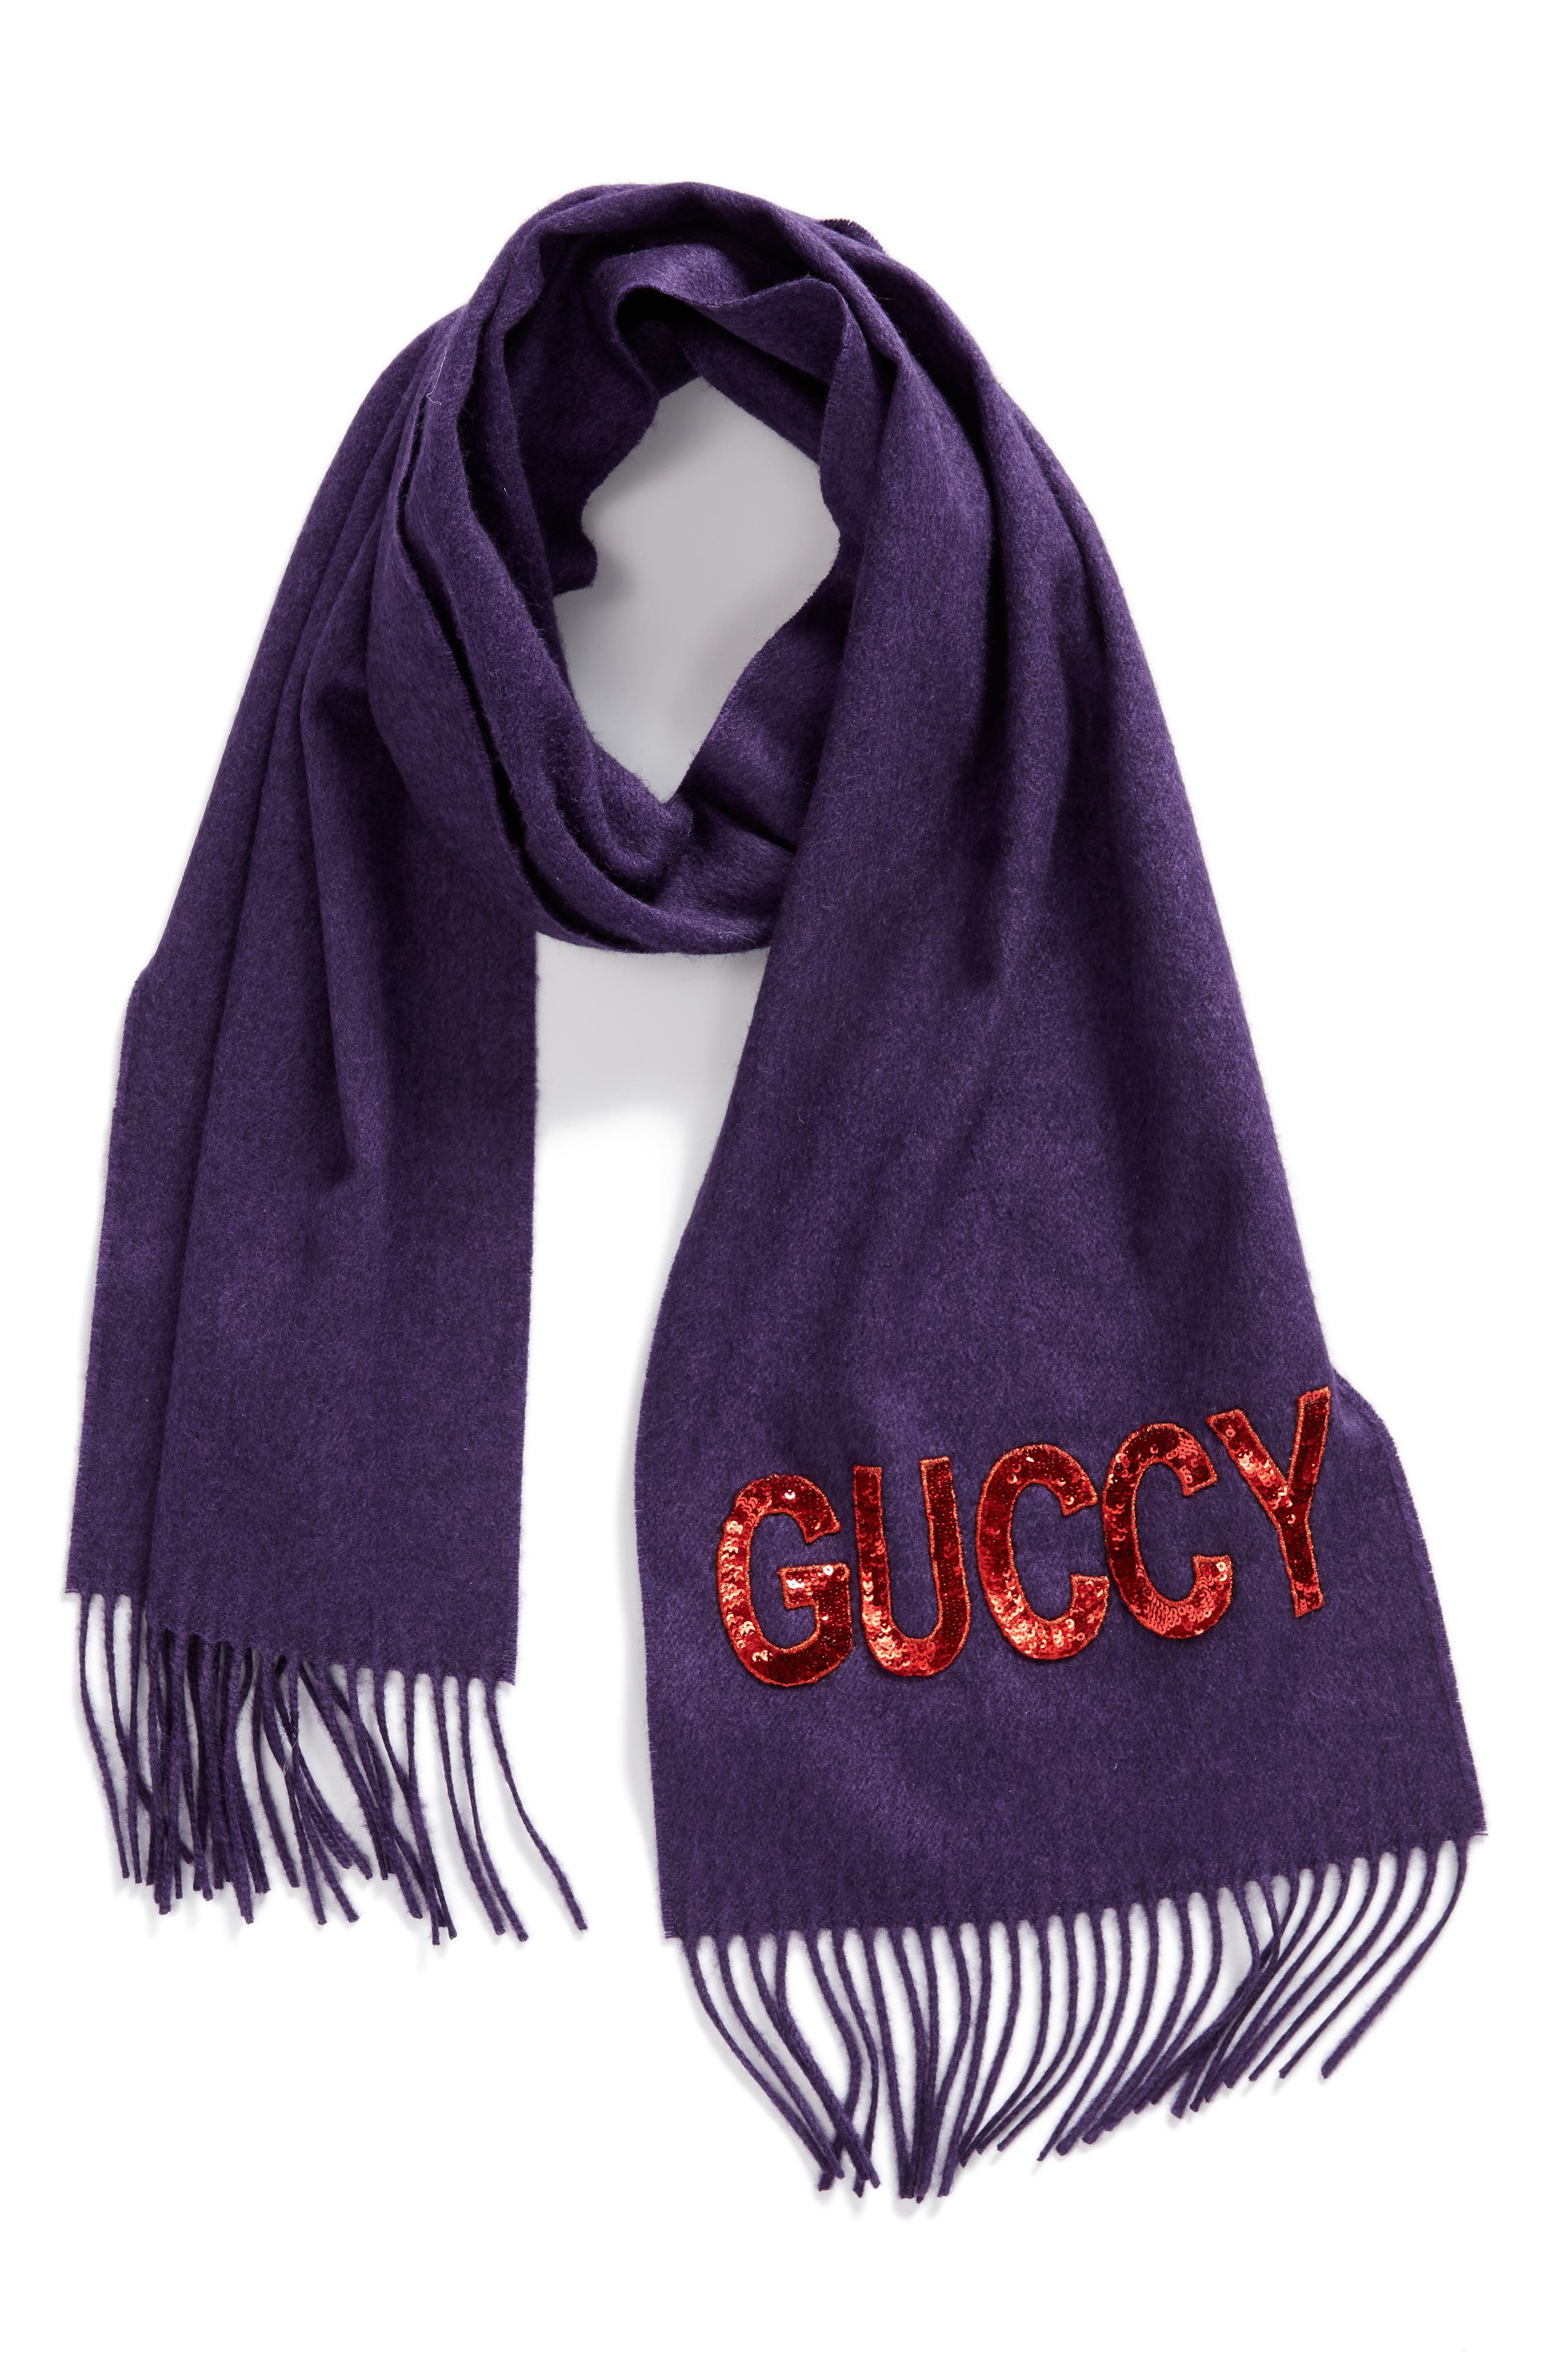 Alternate Image 1 Selected - Gucci Guccy Sequin Silk & Cashmere Scarf